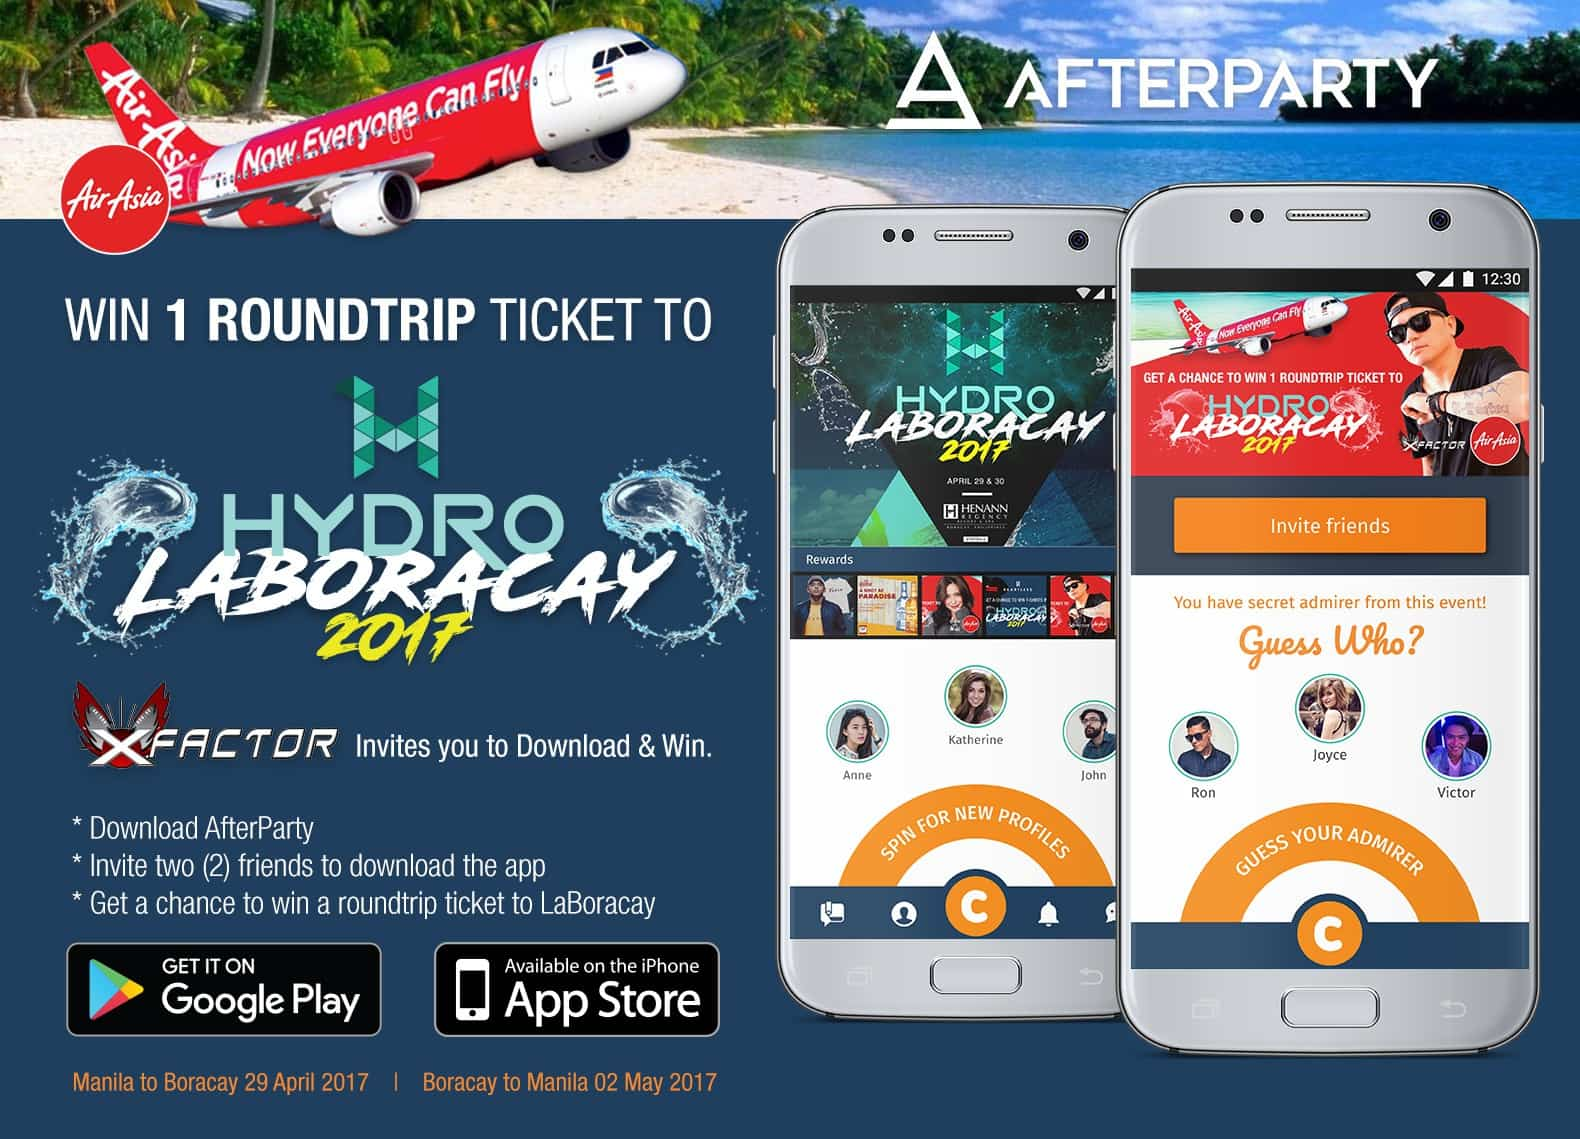 AfterParty and AirAsia x-Factor contest for Hydro Laboracay 2017